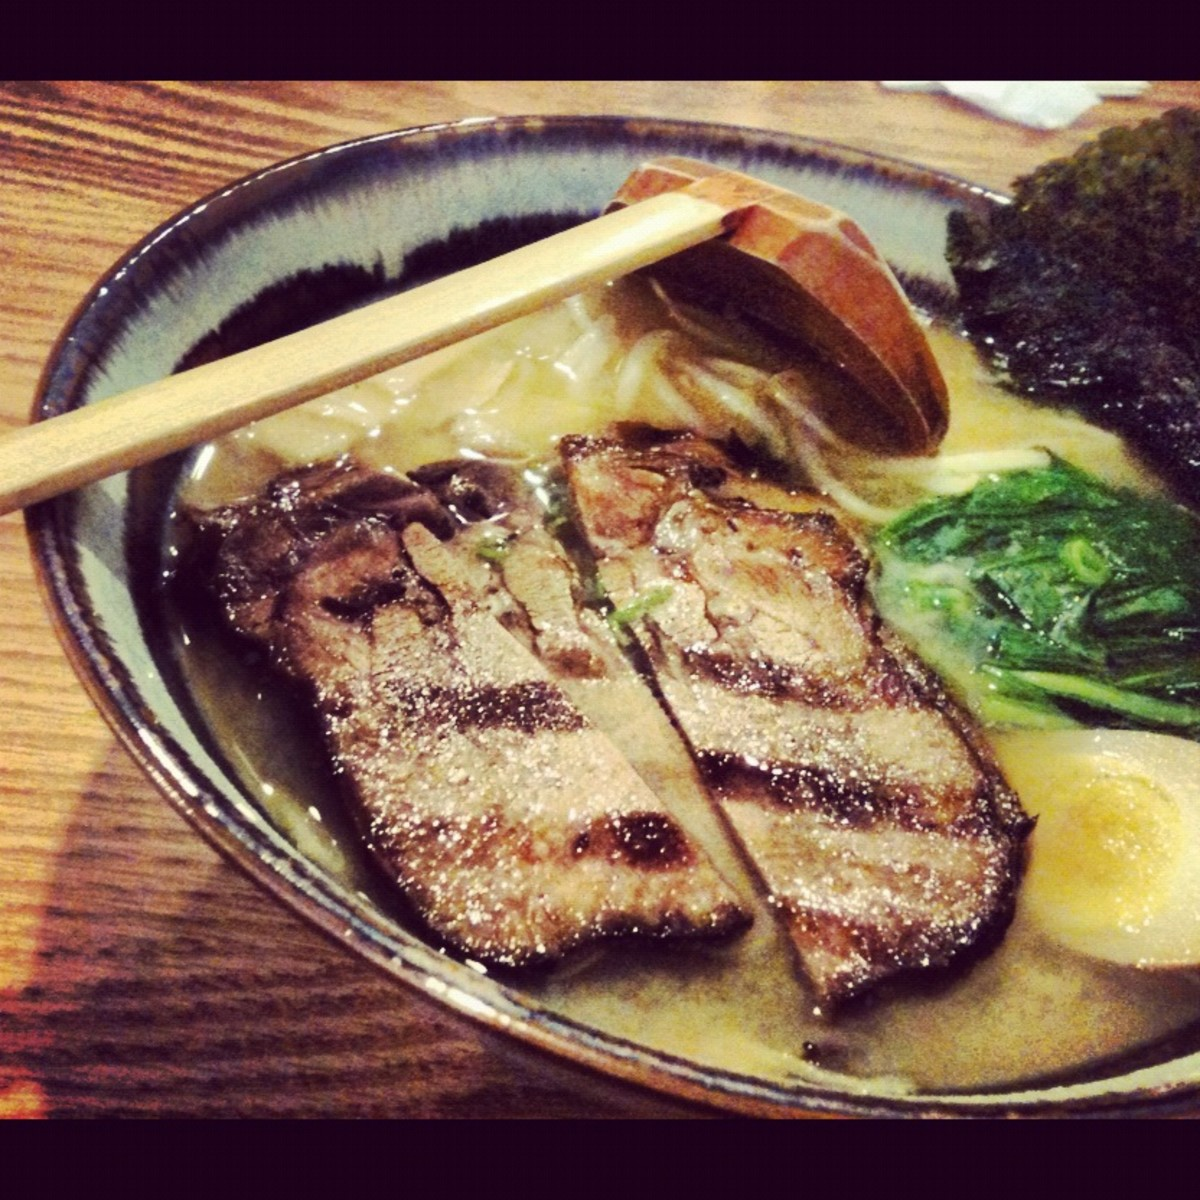 Protein-Rich Lunch with Meat, Egg and Miso Broth